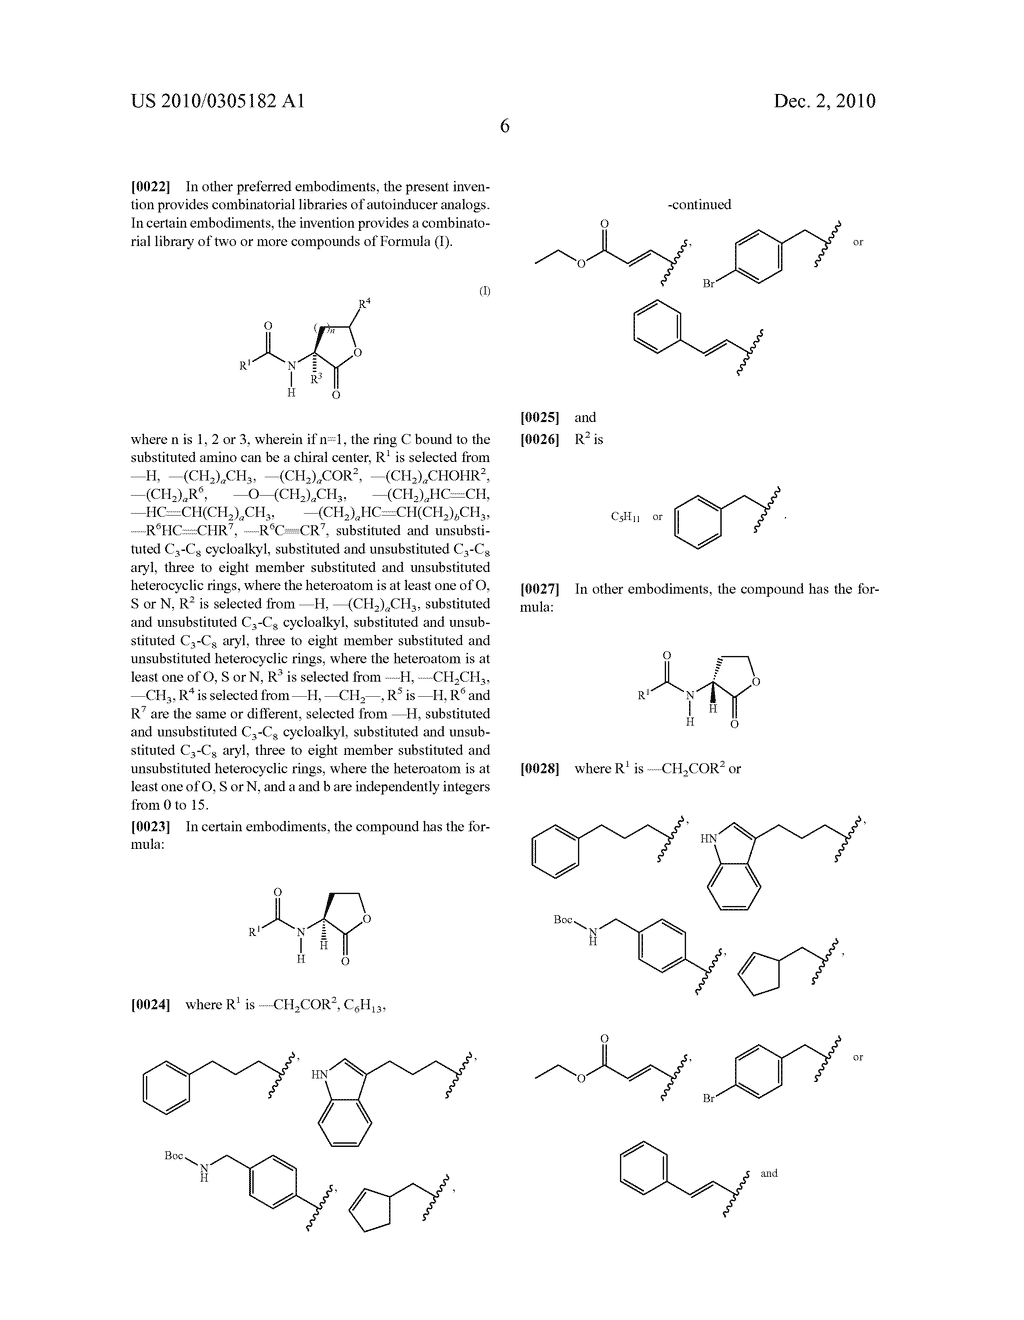 COMPOUNDS AND METHODS FOR MODULATING COMMUNICATION AND VIRULENCE IN QUORUM SENSING BACTERIA - diagram, schematic, and image 83